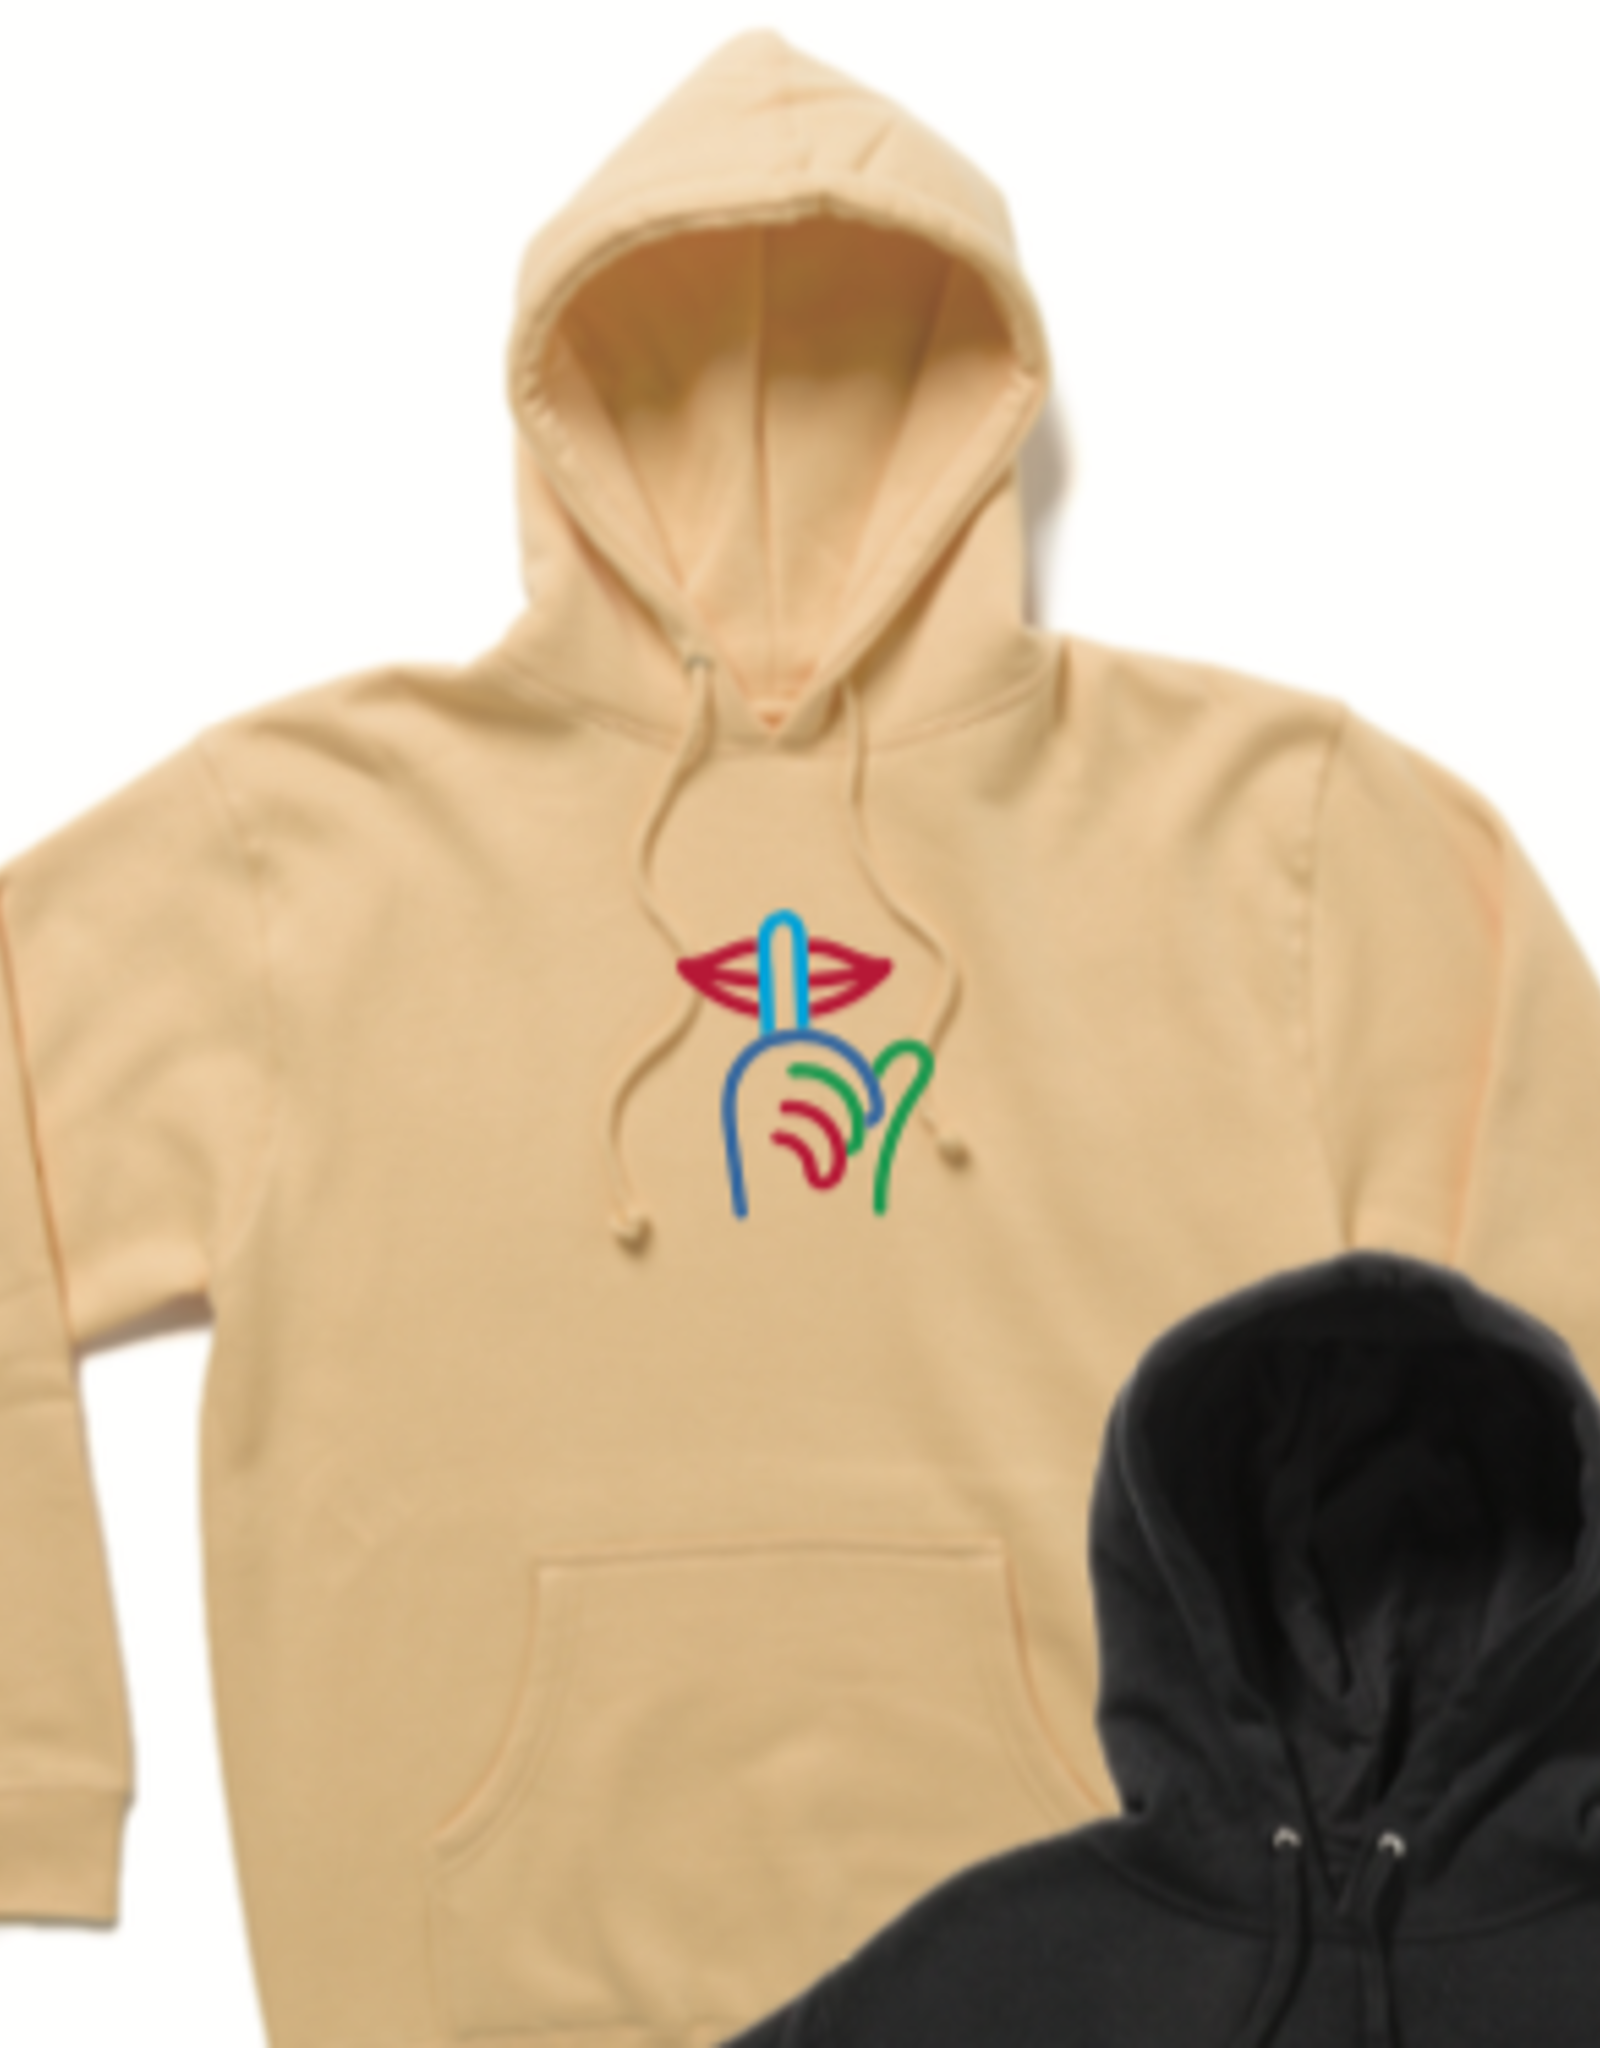 THE QUIET LIFE THE QUIET LIFE SHH EMBROIDERED PULLOVER HOODIE